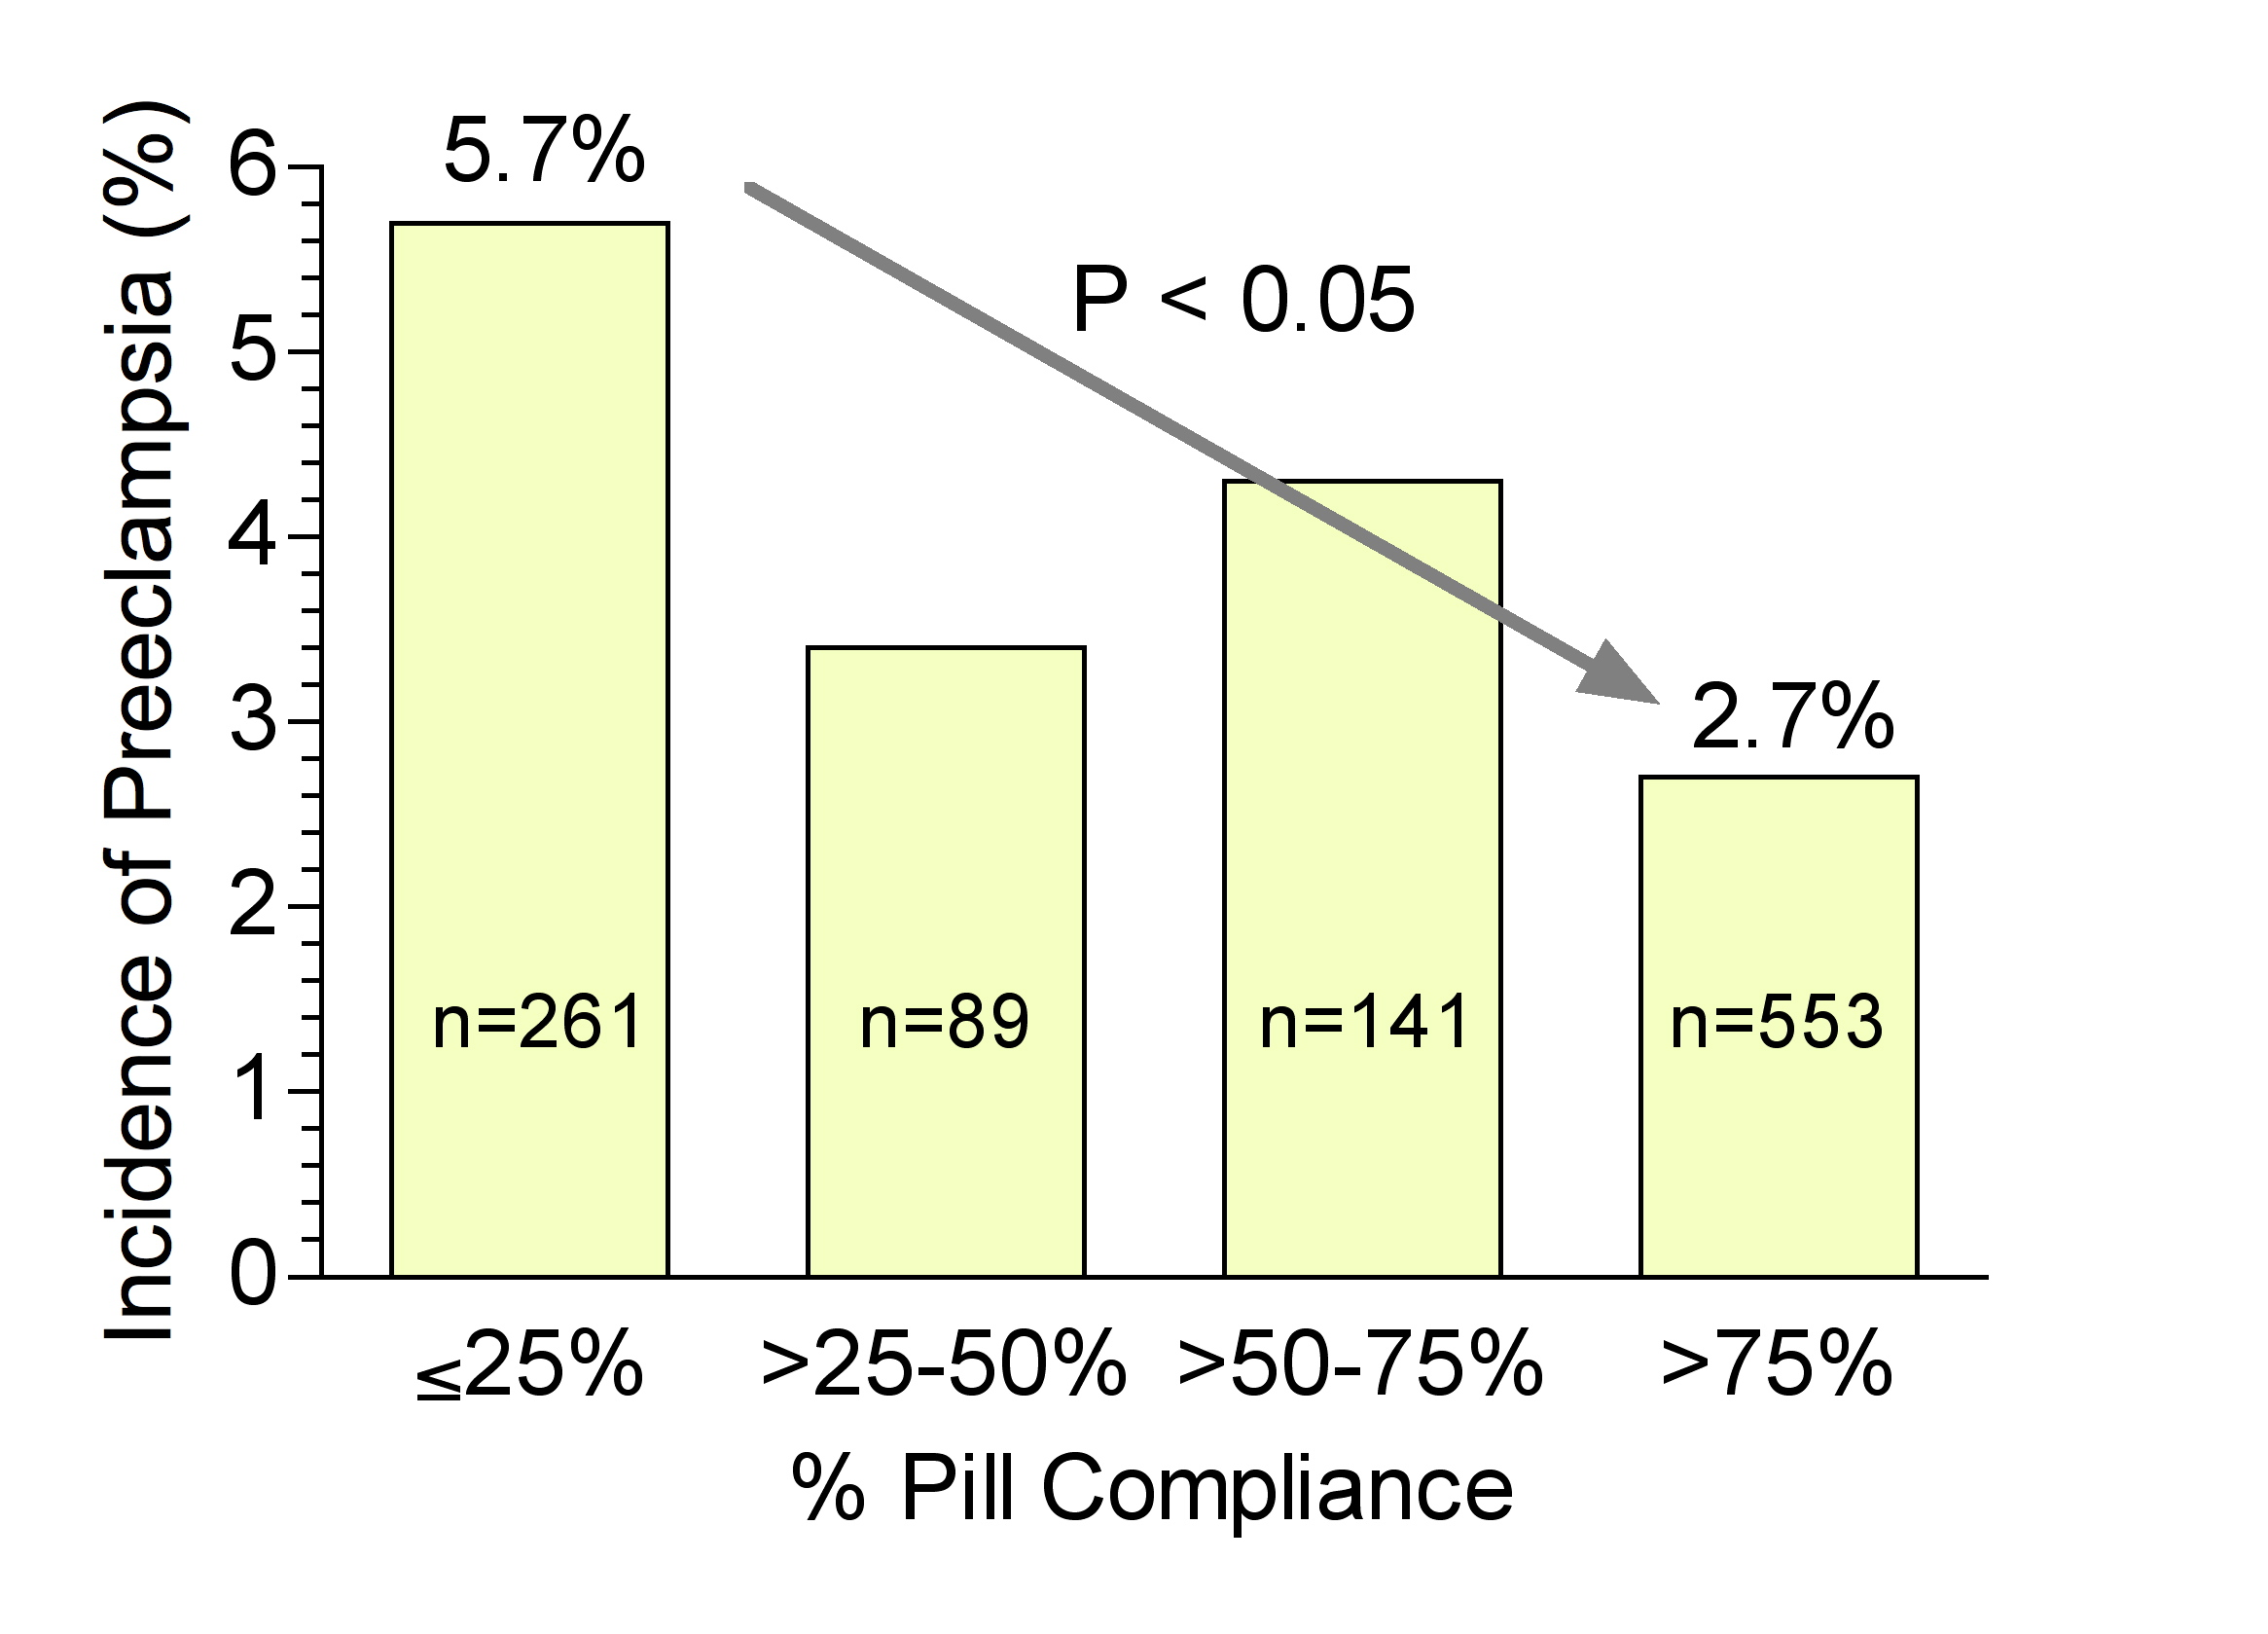 Prostaglandins in pregnancy glowm fig 7 incidence of preeclampsia in relation to compliance of women on low dose aspirin therapy pill compliance was significantly associated with a nvjuhfo Choice Image